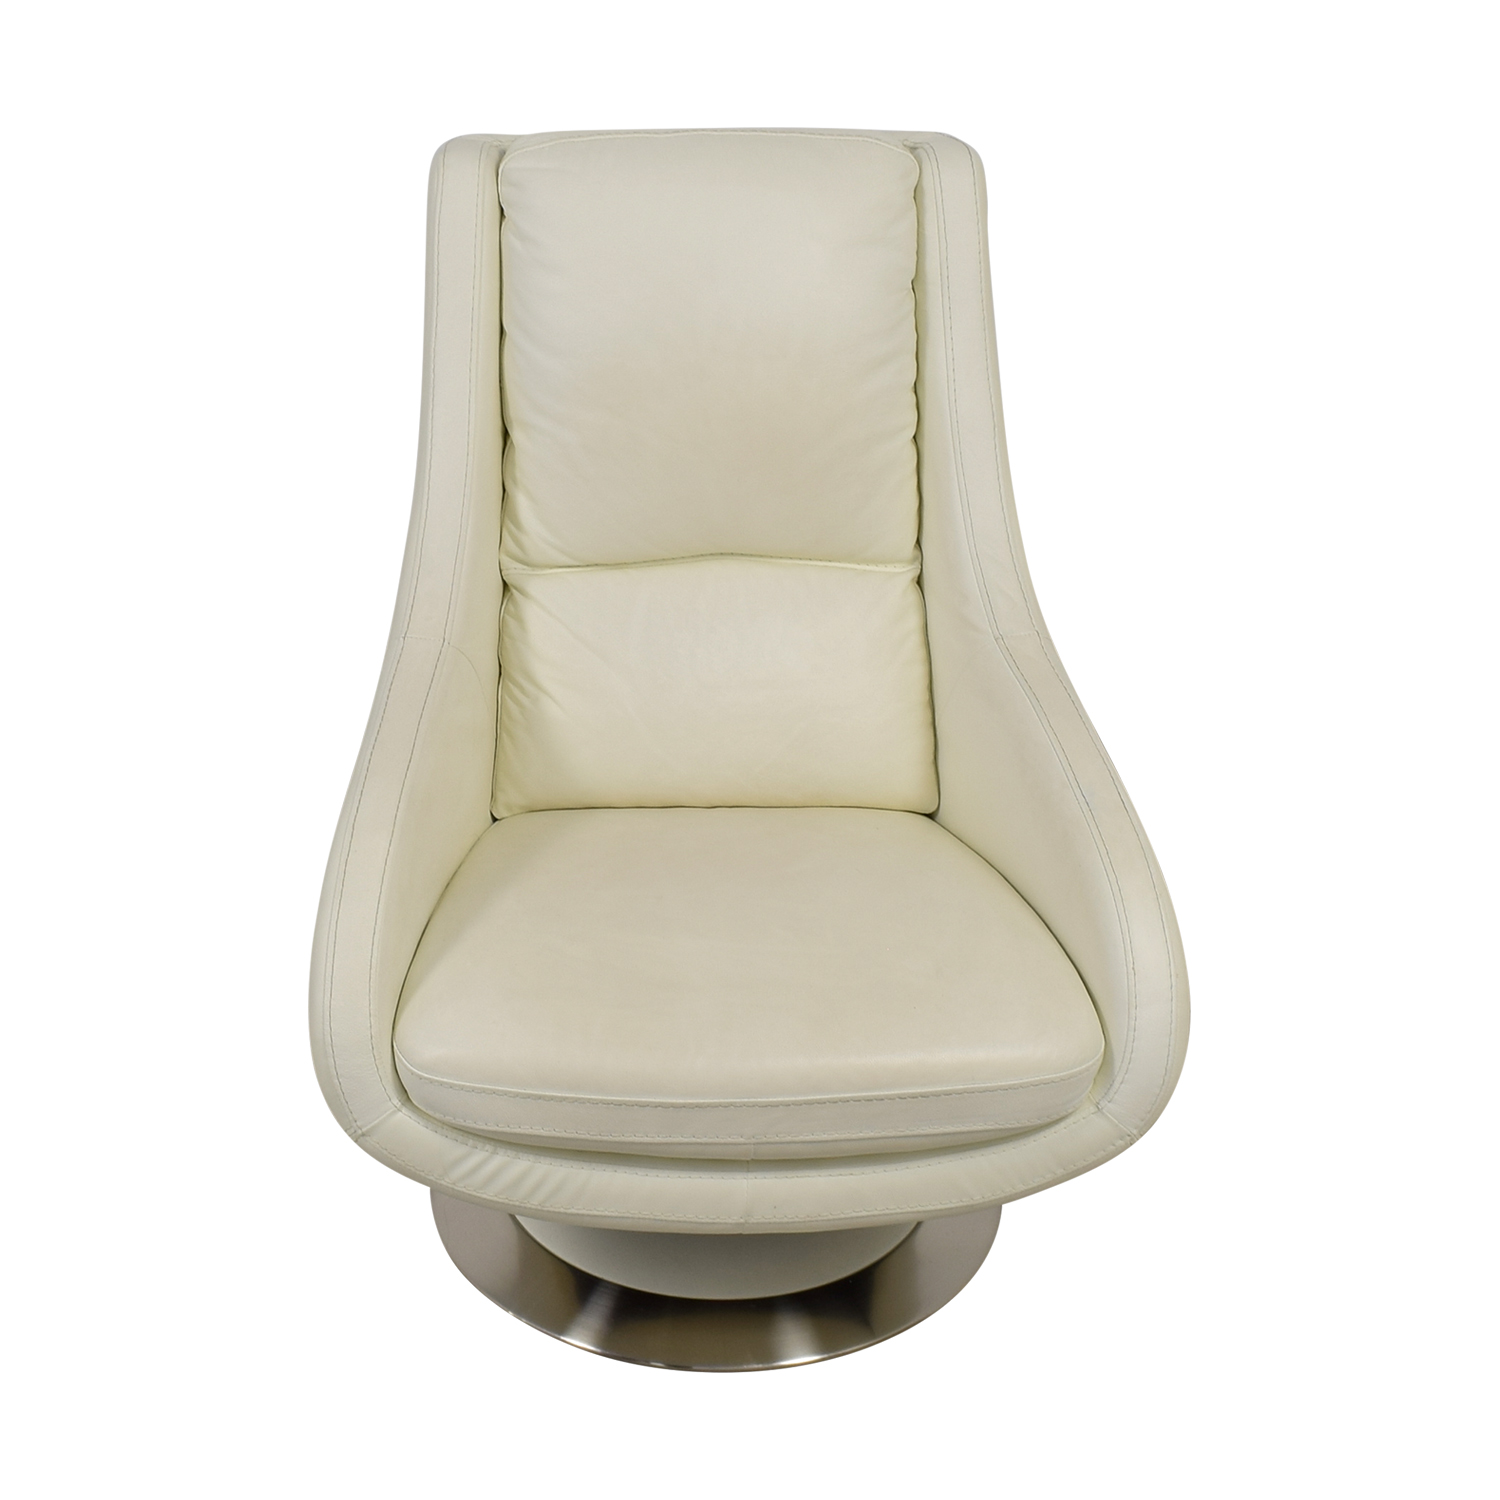 Sensational 73 Off Design Within Reach Design Within Reach White Leather Swivel Chair Chairs Squirreltailoven Fun Painted Chair Ideas Images Squirreltailovenorg